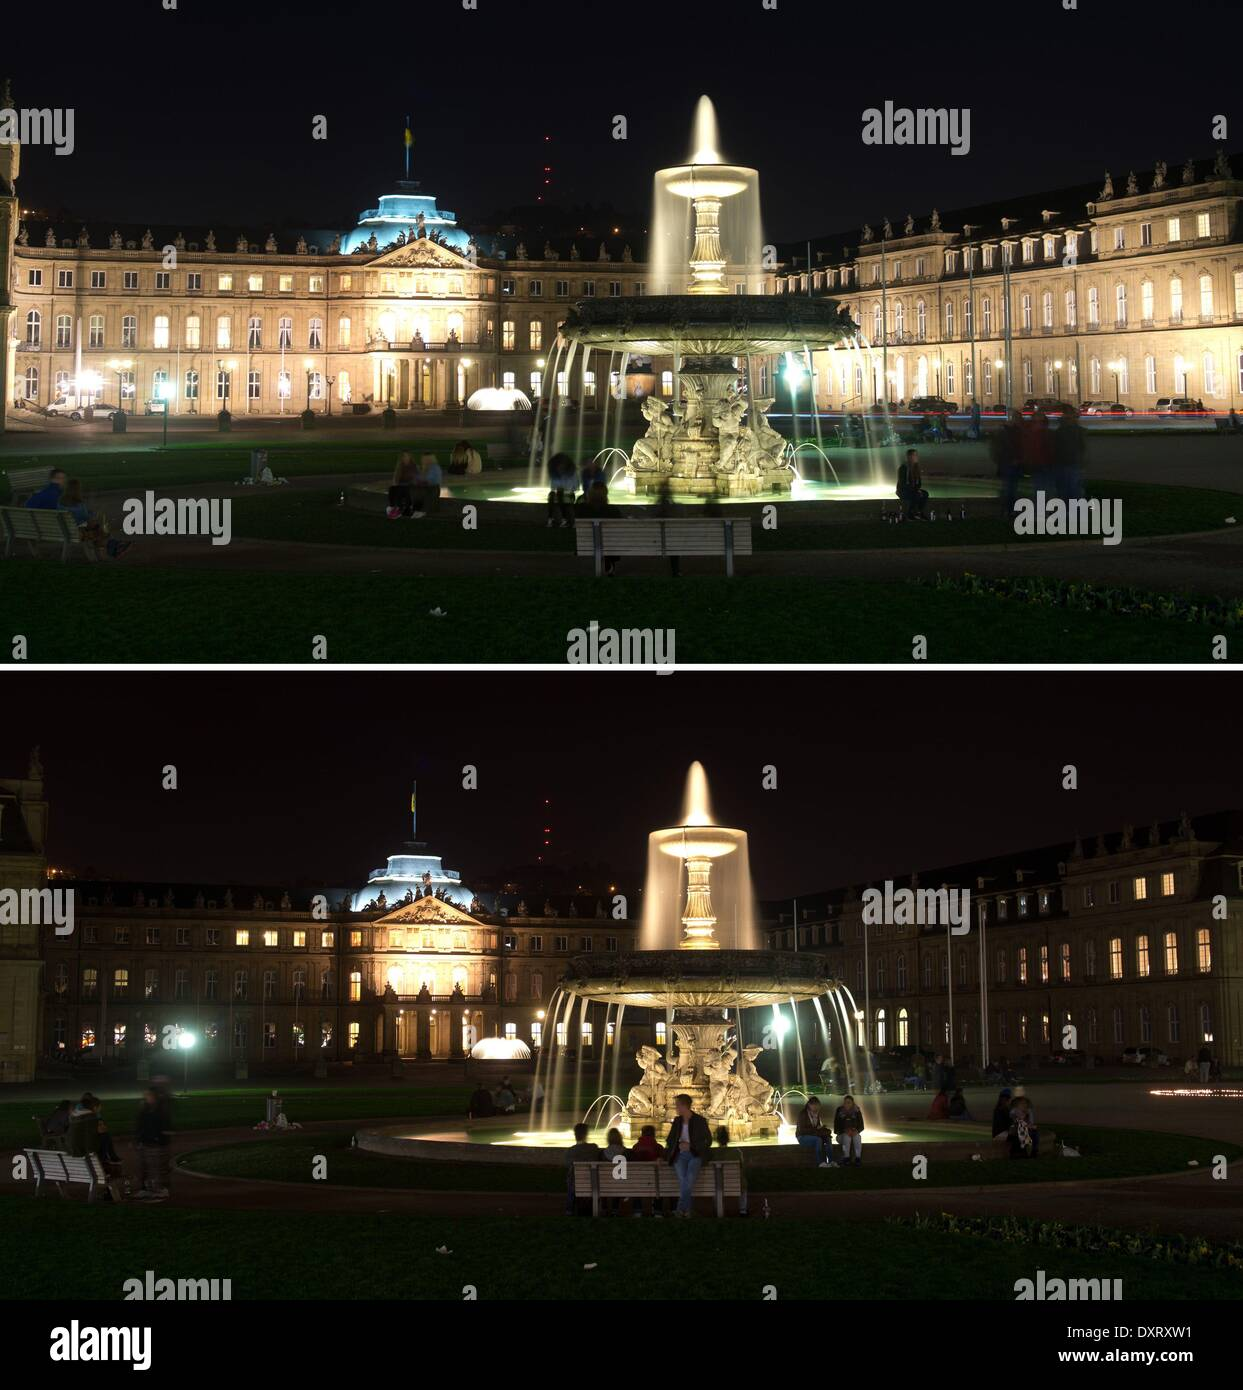 Stuttgart, Germany. 29th Mar, 2014. The composite picutre shows the lit (top) and the unlit Neue Schloss palace during the so called 'Earth Hour' event in Stuttgart, Germany, 29 March 2014. 'Earth Hour' is a worldwide event which aims to set a sign for environmental protection and to draw attention to environmental awareness. Photo: Sebastian Kahnert/dpa/Alamy Live News - Stock Image